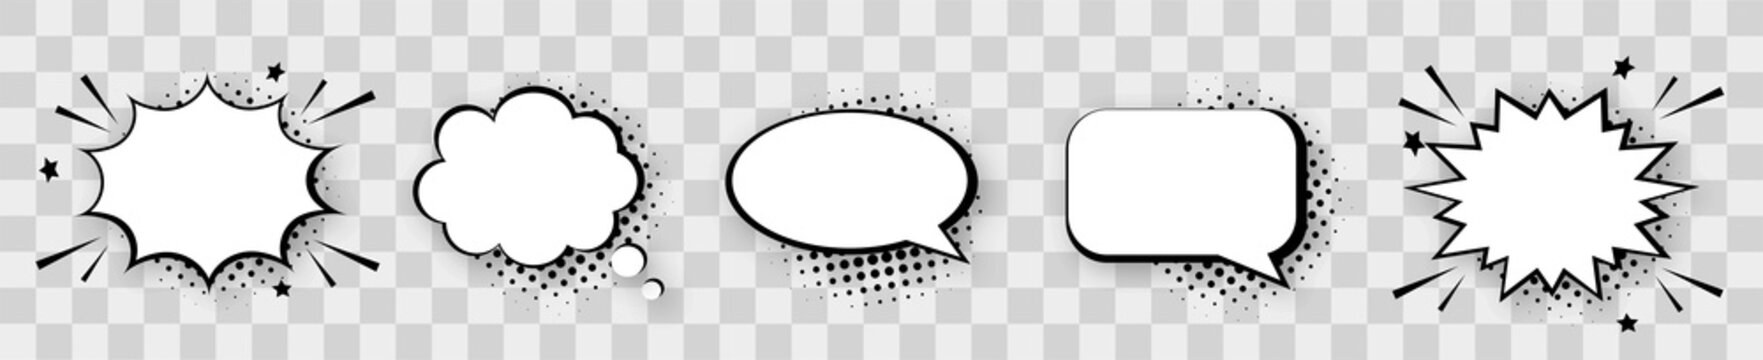 Empty comic speech bubbles set with halftone shadows. Retro comic explosions isolated on transparent background. Vintage design elements. Pop art style.